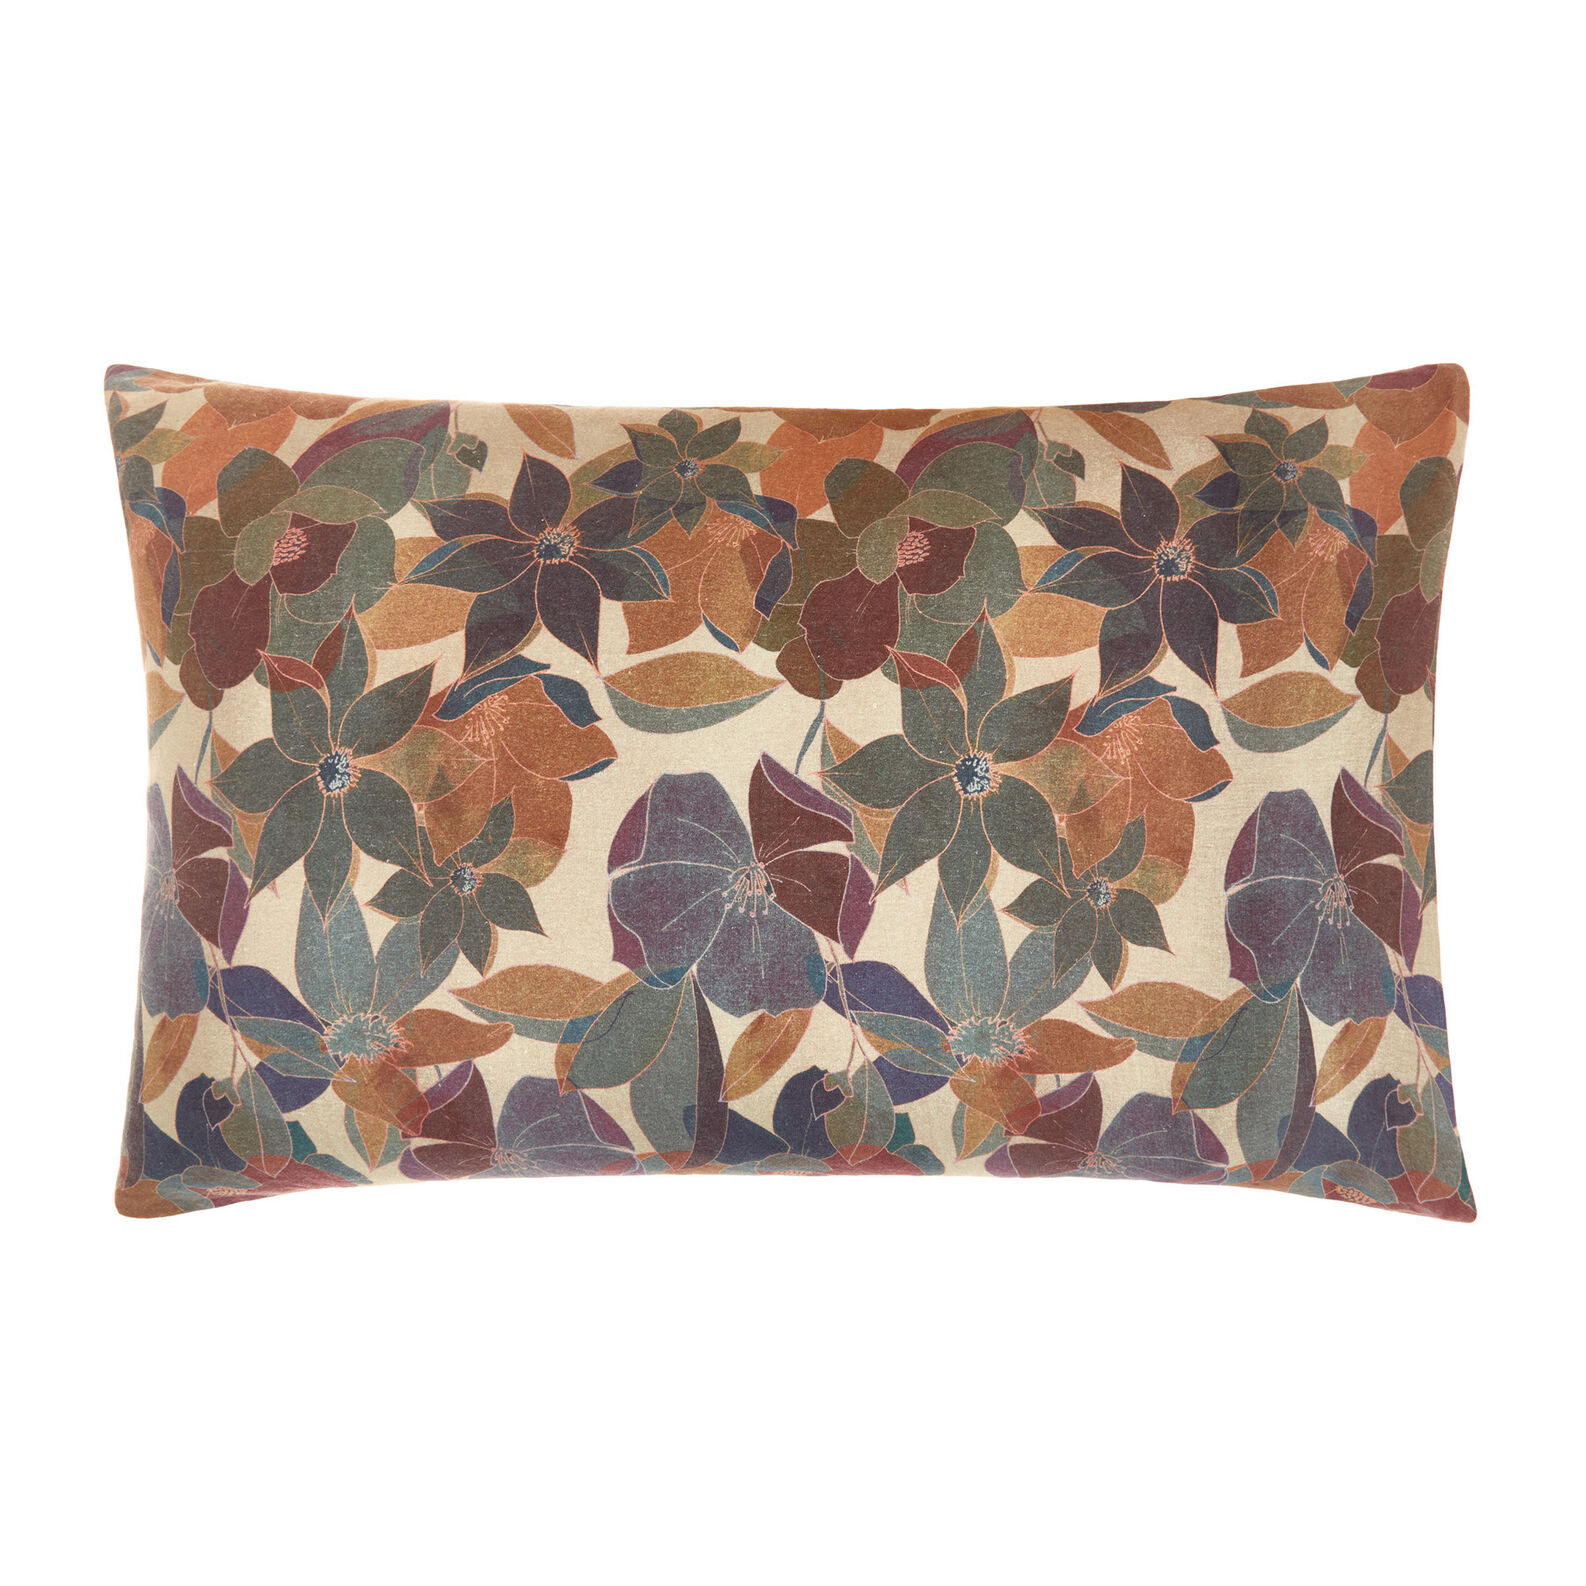 Pillowcase in washed 100% linen with floral pattern